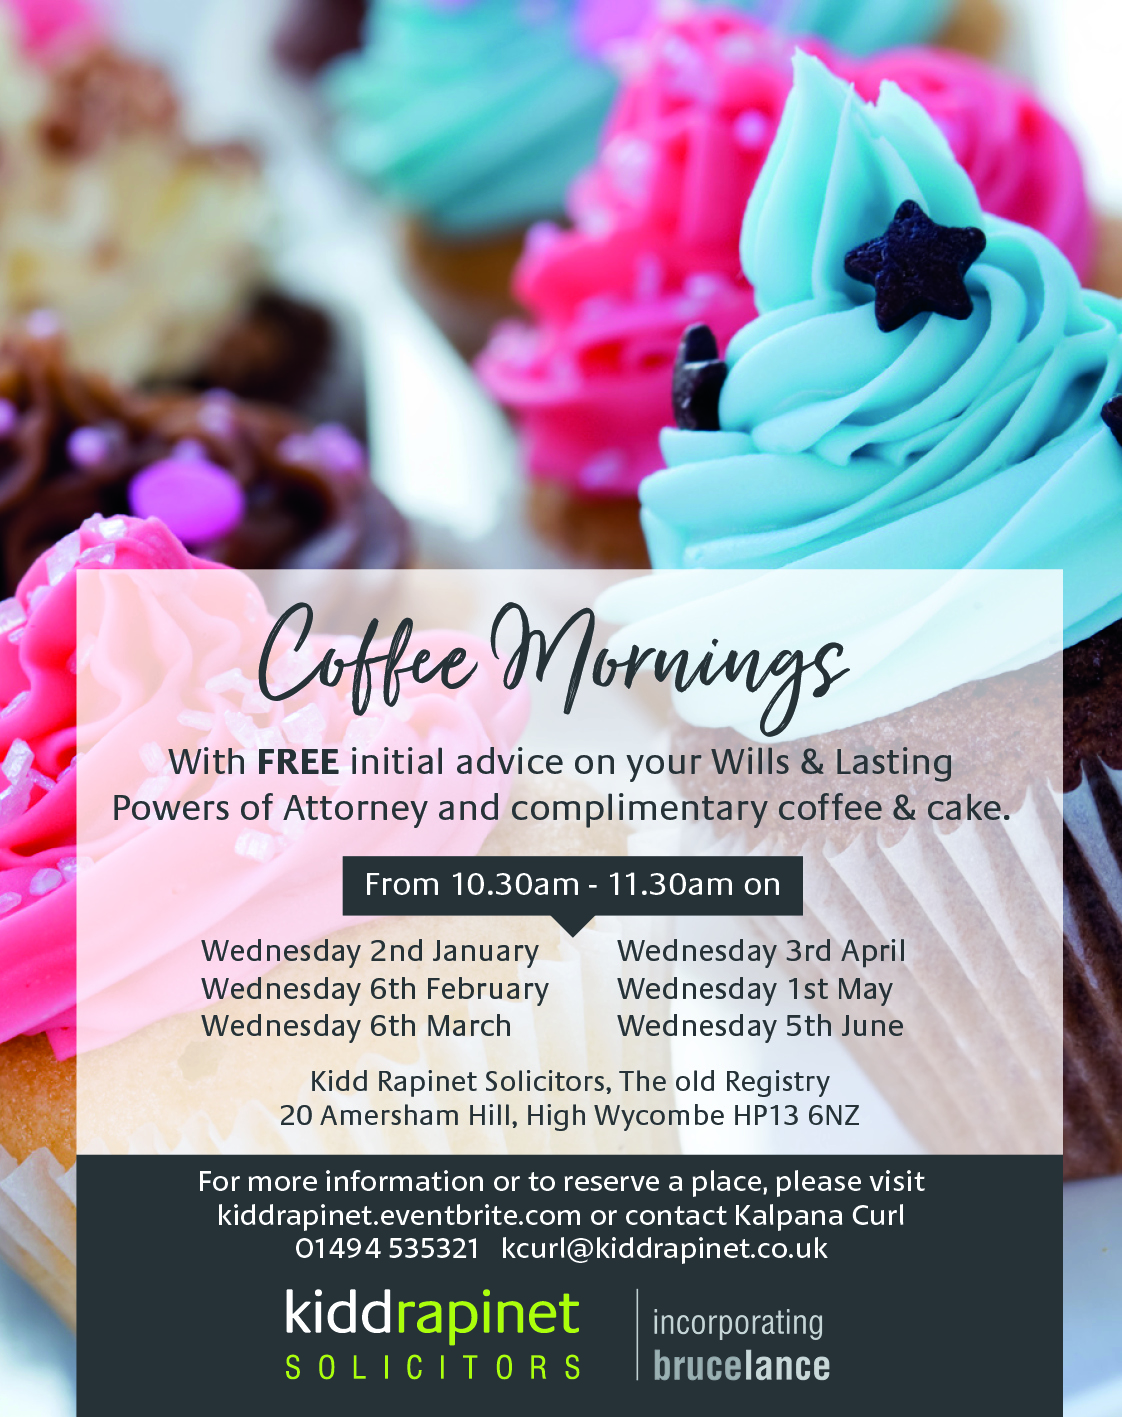 5th June FREE Wills and LPA Coffee Morning